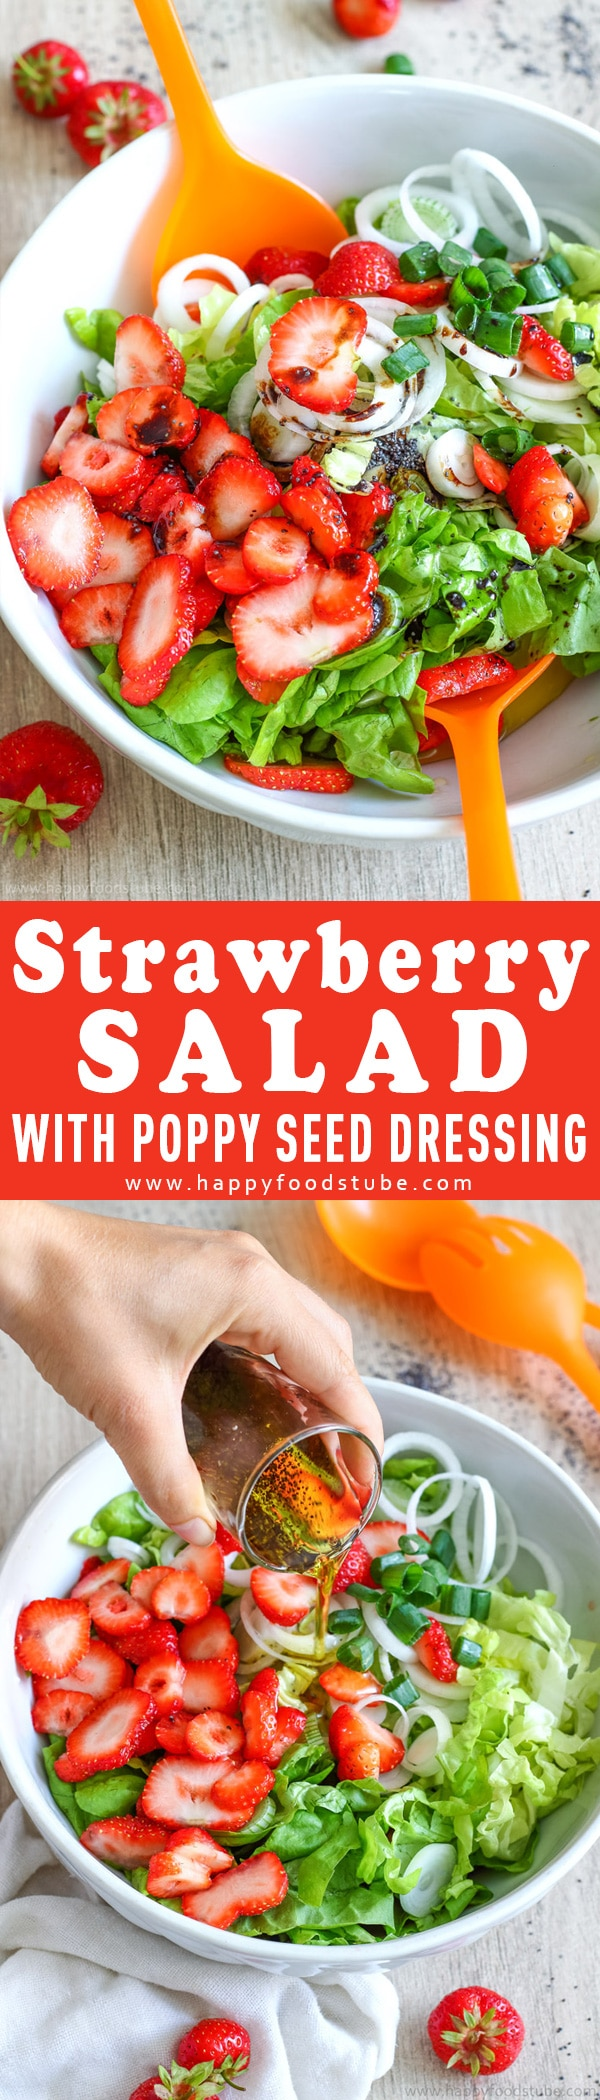 This Strawberry salad with poppy seed dressing is the perfect barbecue side dish. Combine strawberries, lettuce & spring onions with tasty 3-ingredient sweet dressing. Simple ingredients and ready in 15-minutes.